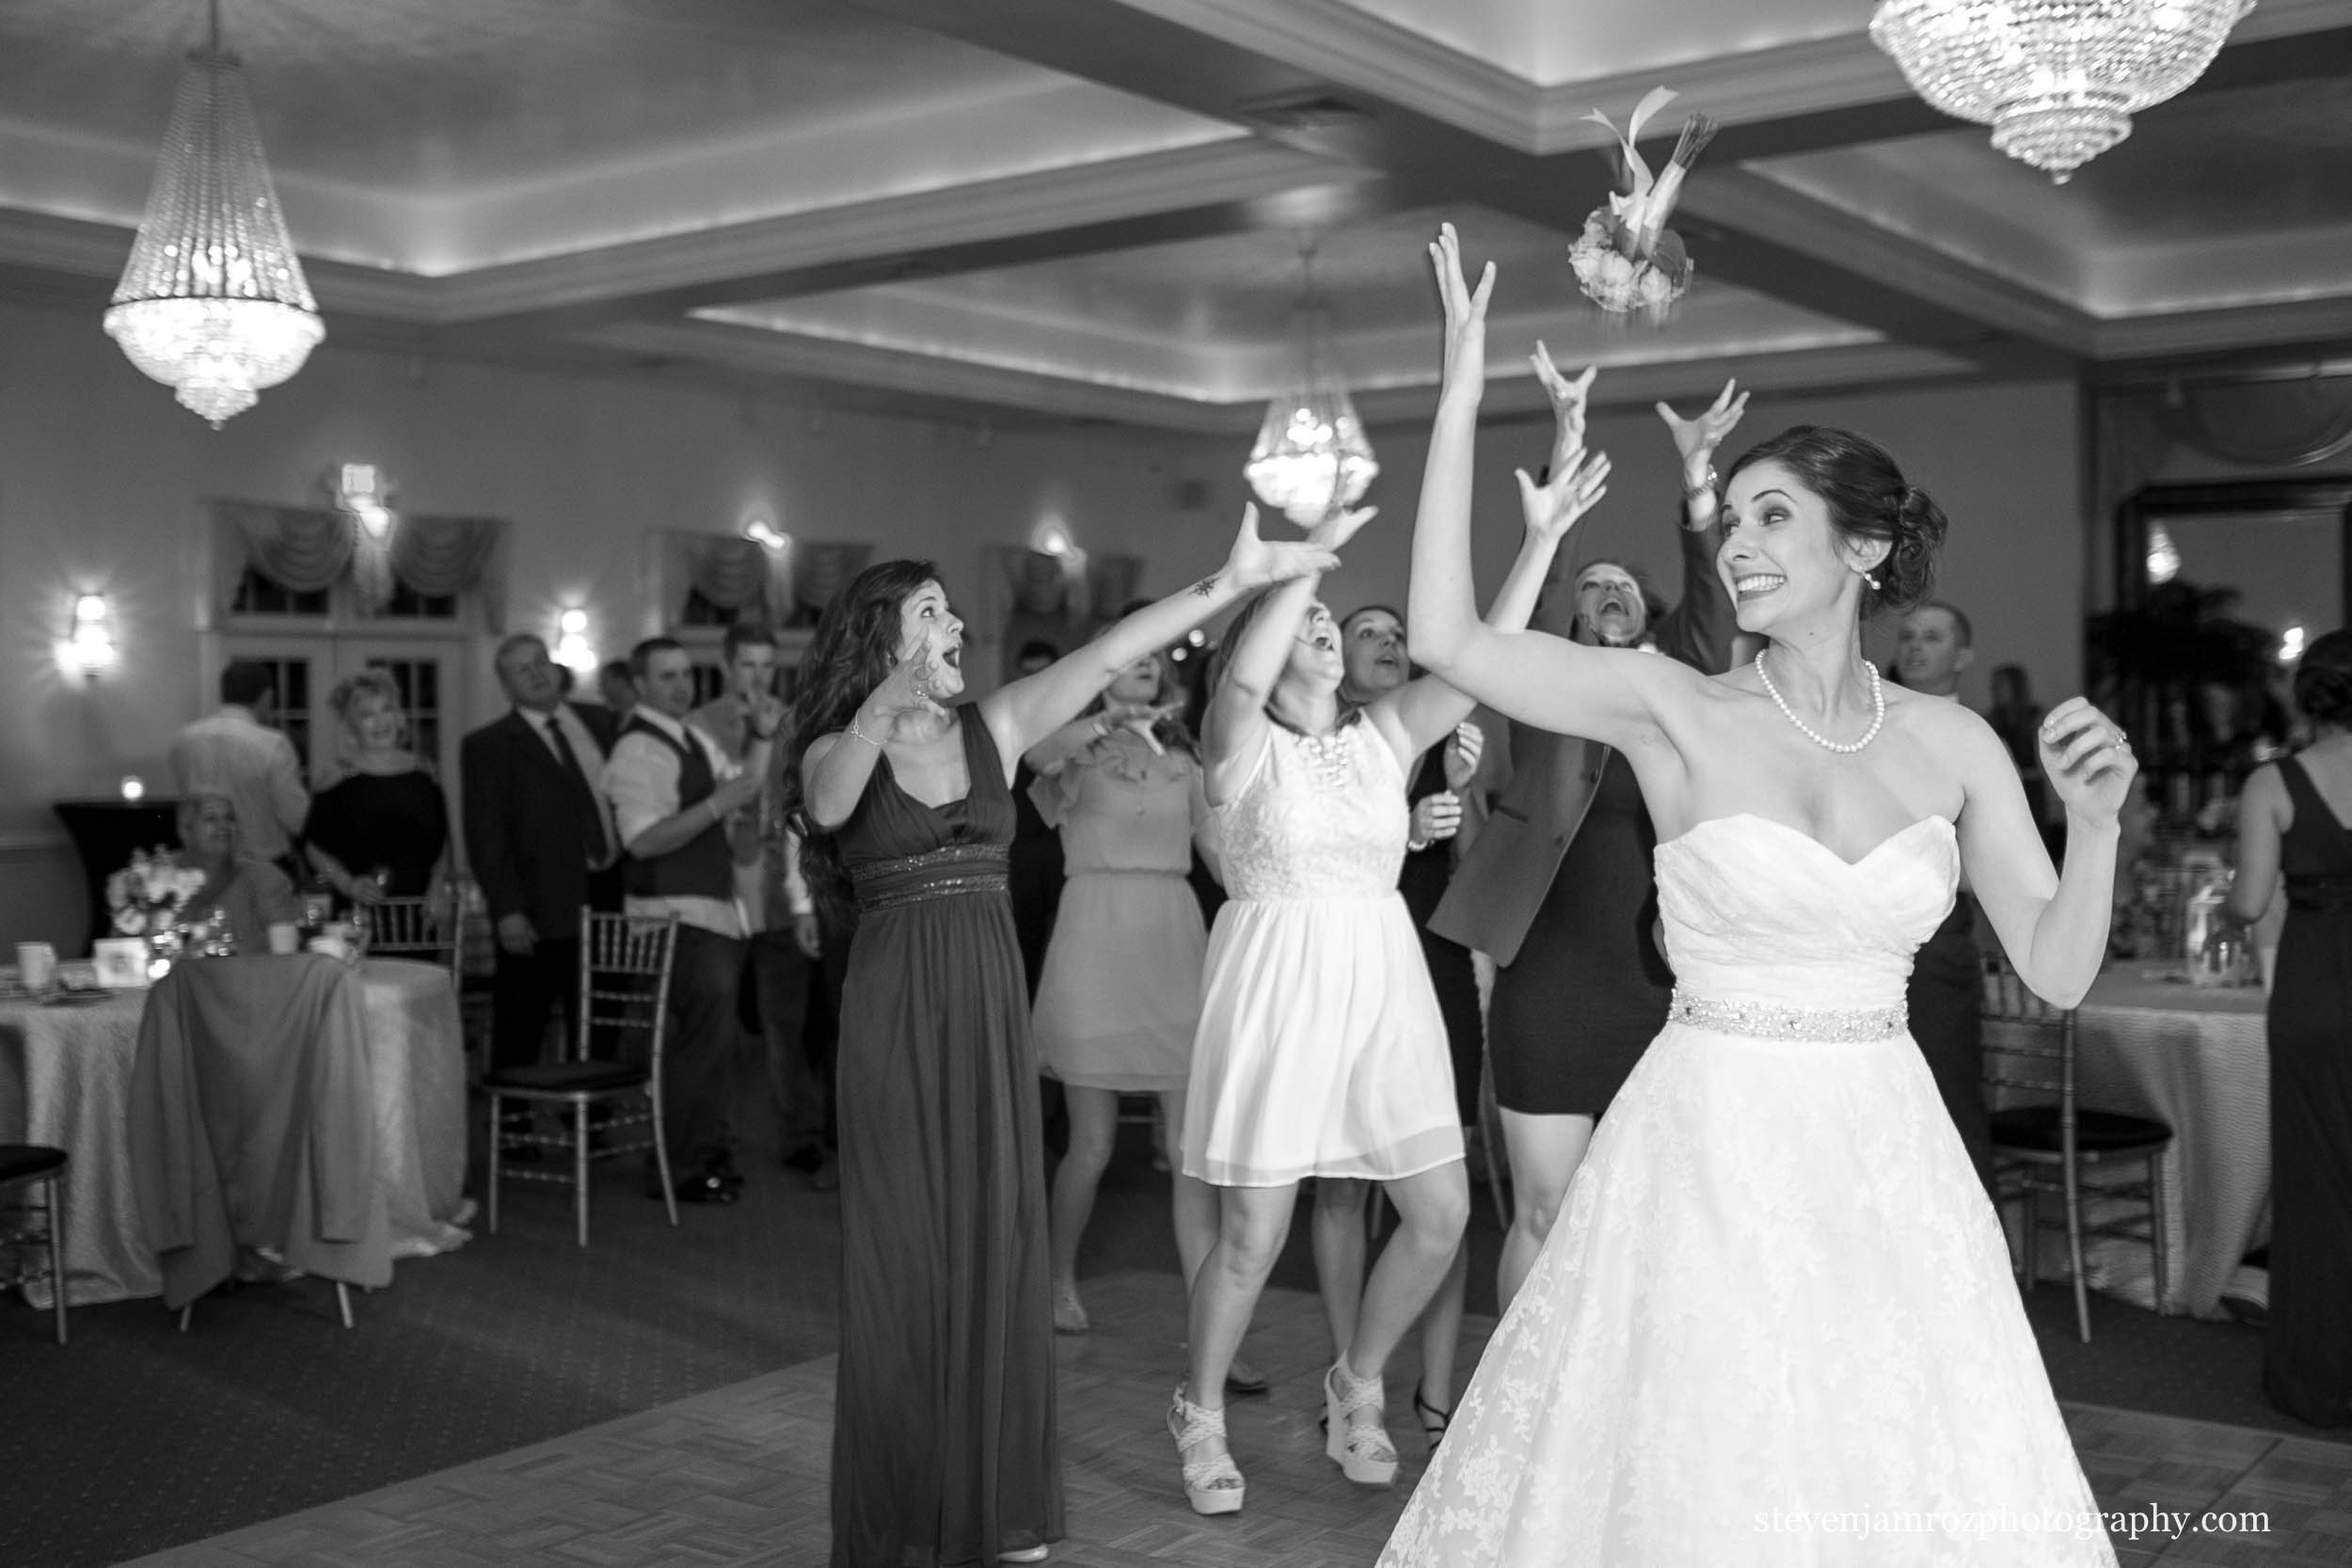 throws-the-bouquet-wedding-hudson-manor-steven-jamroz-photography-0179.jpg